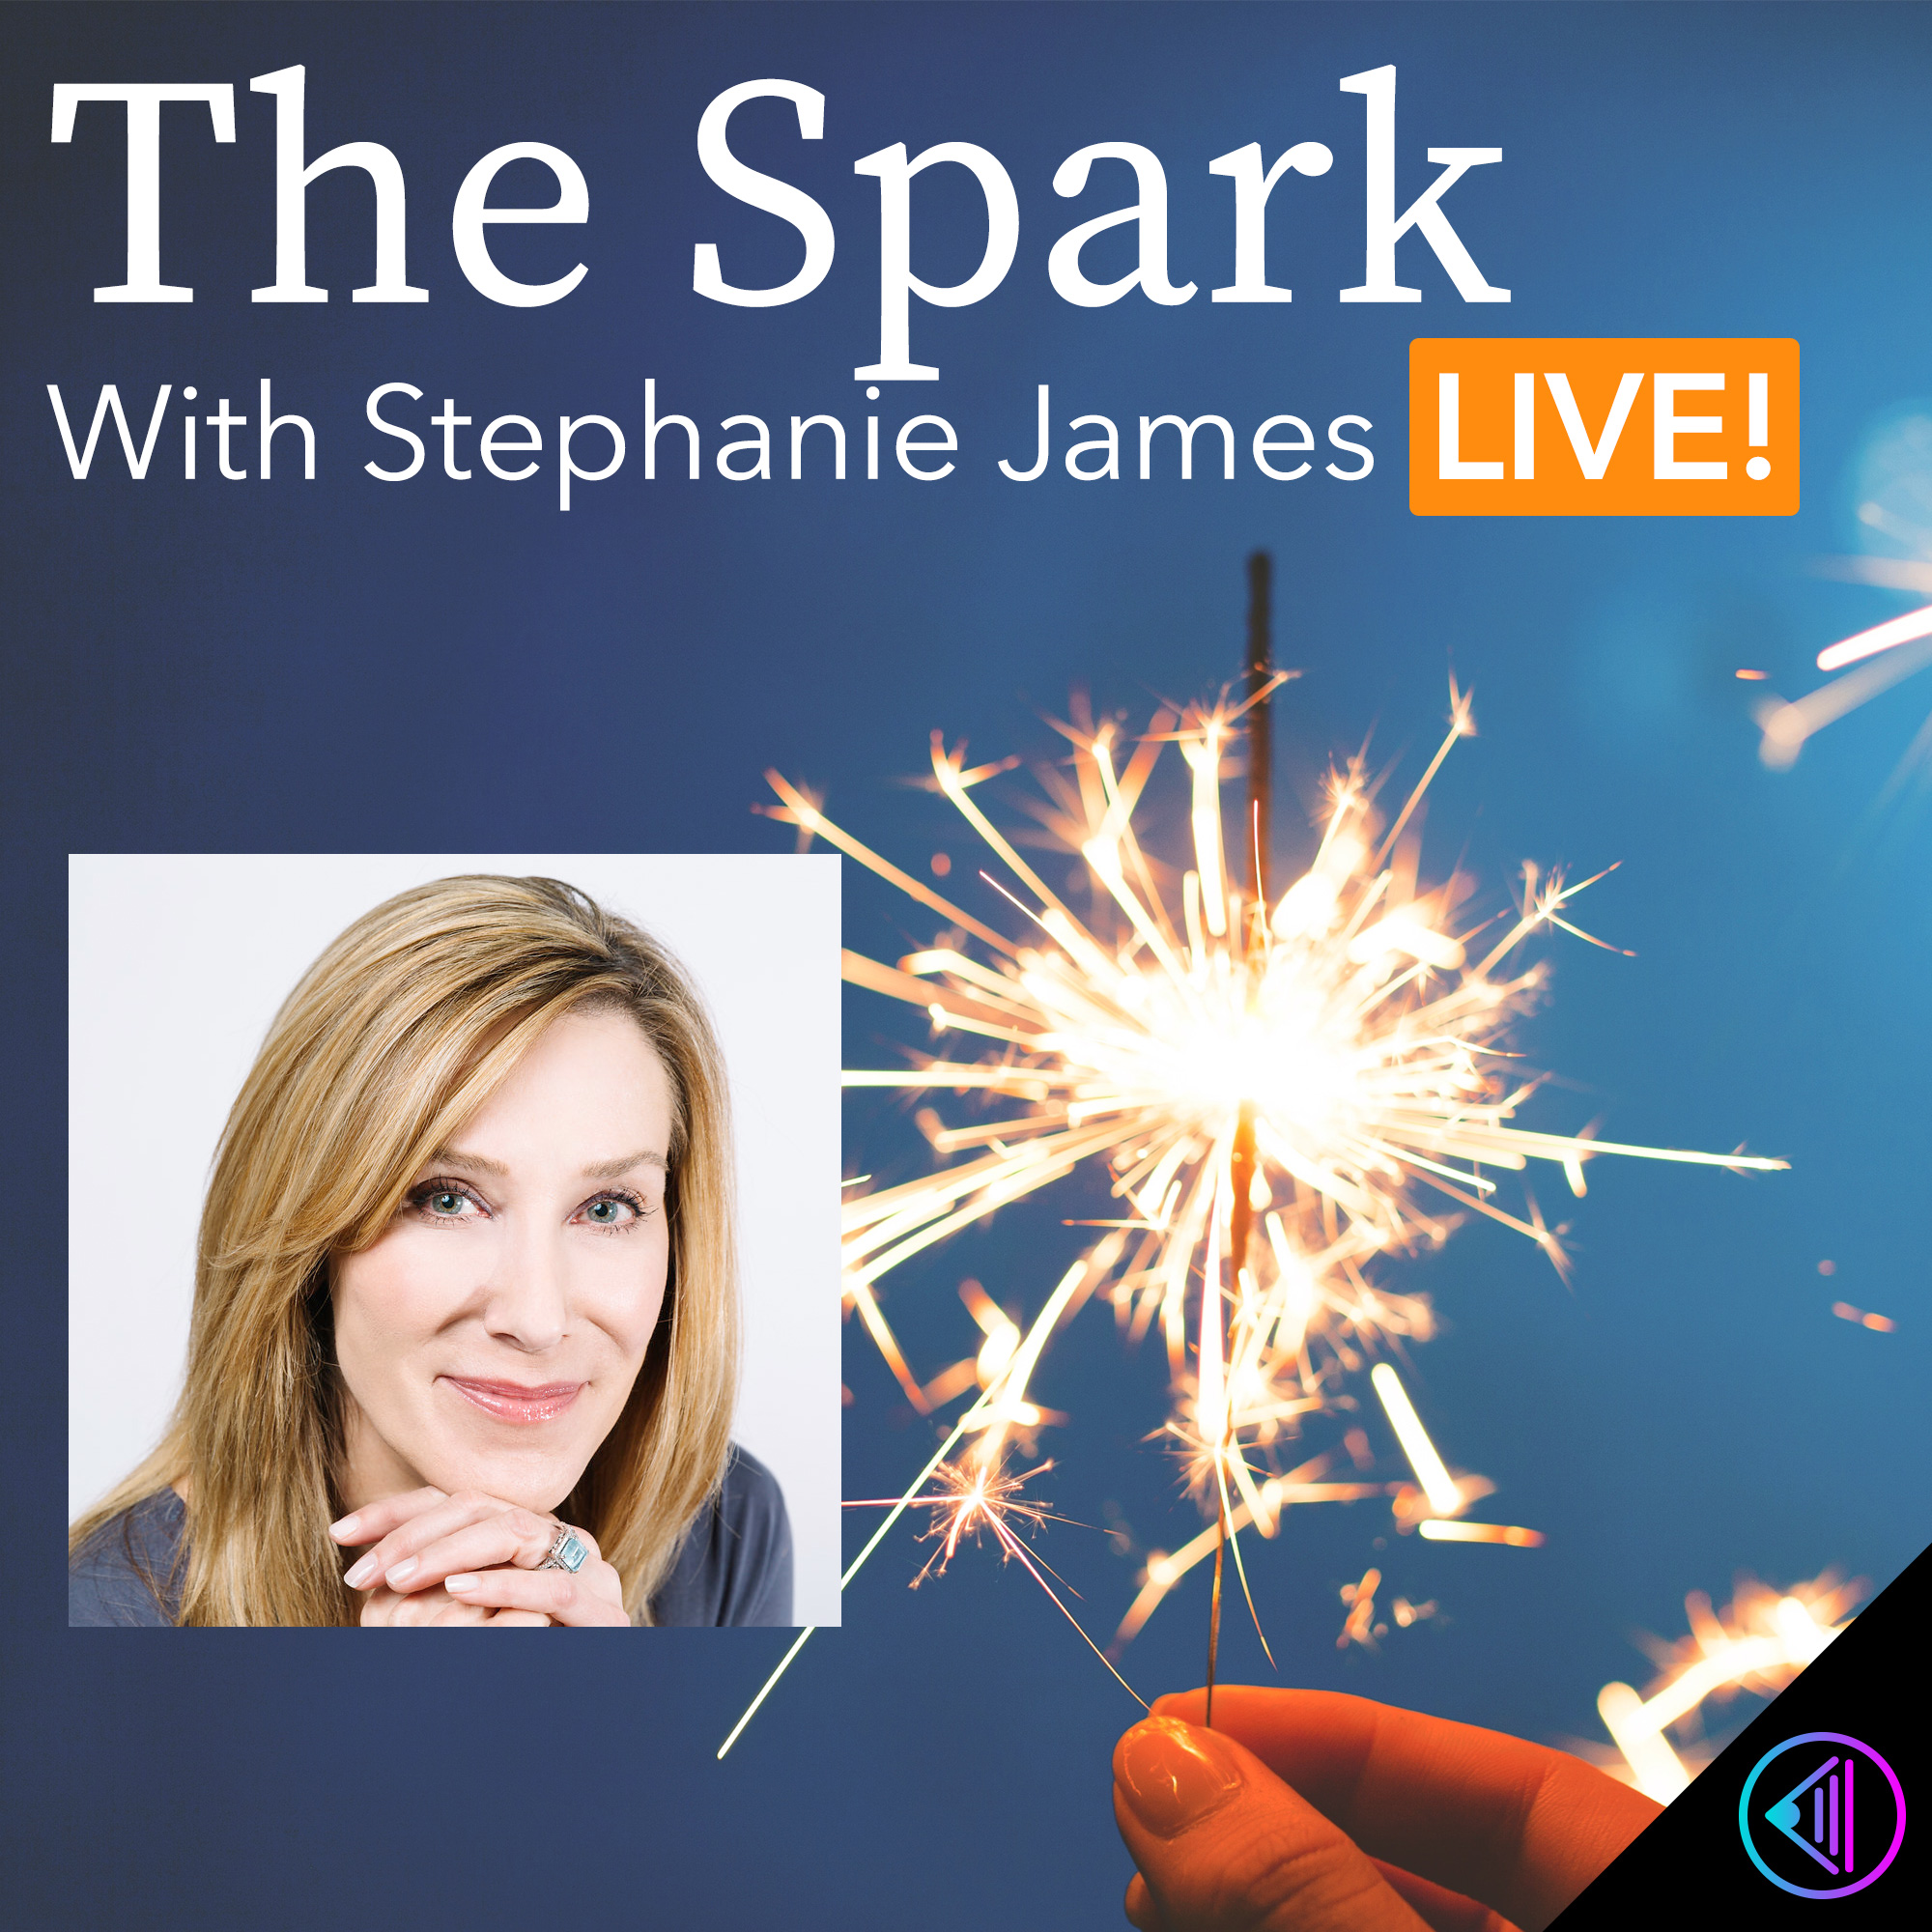 The Spark LIVE Special